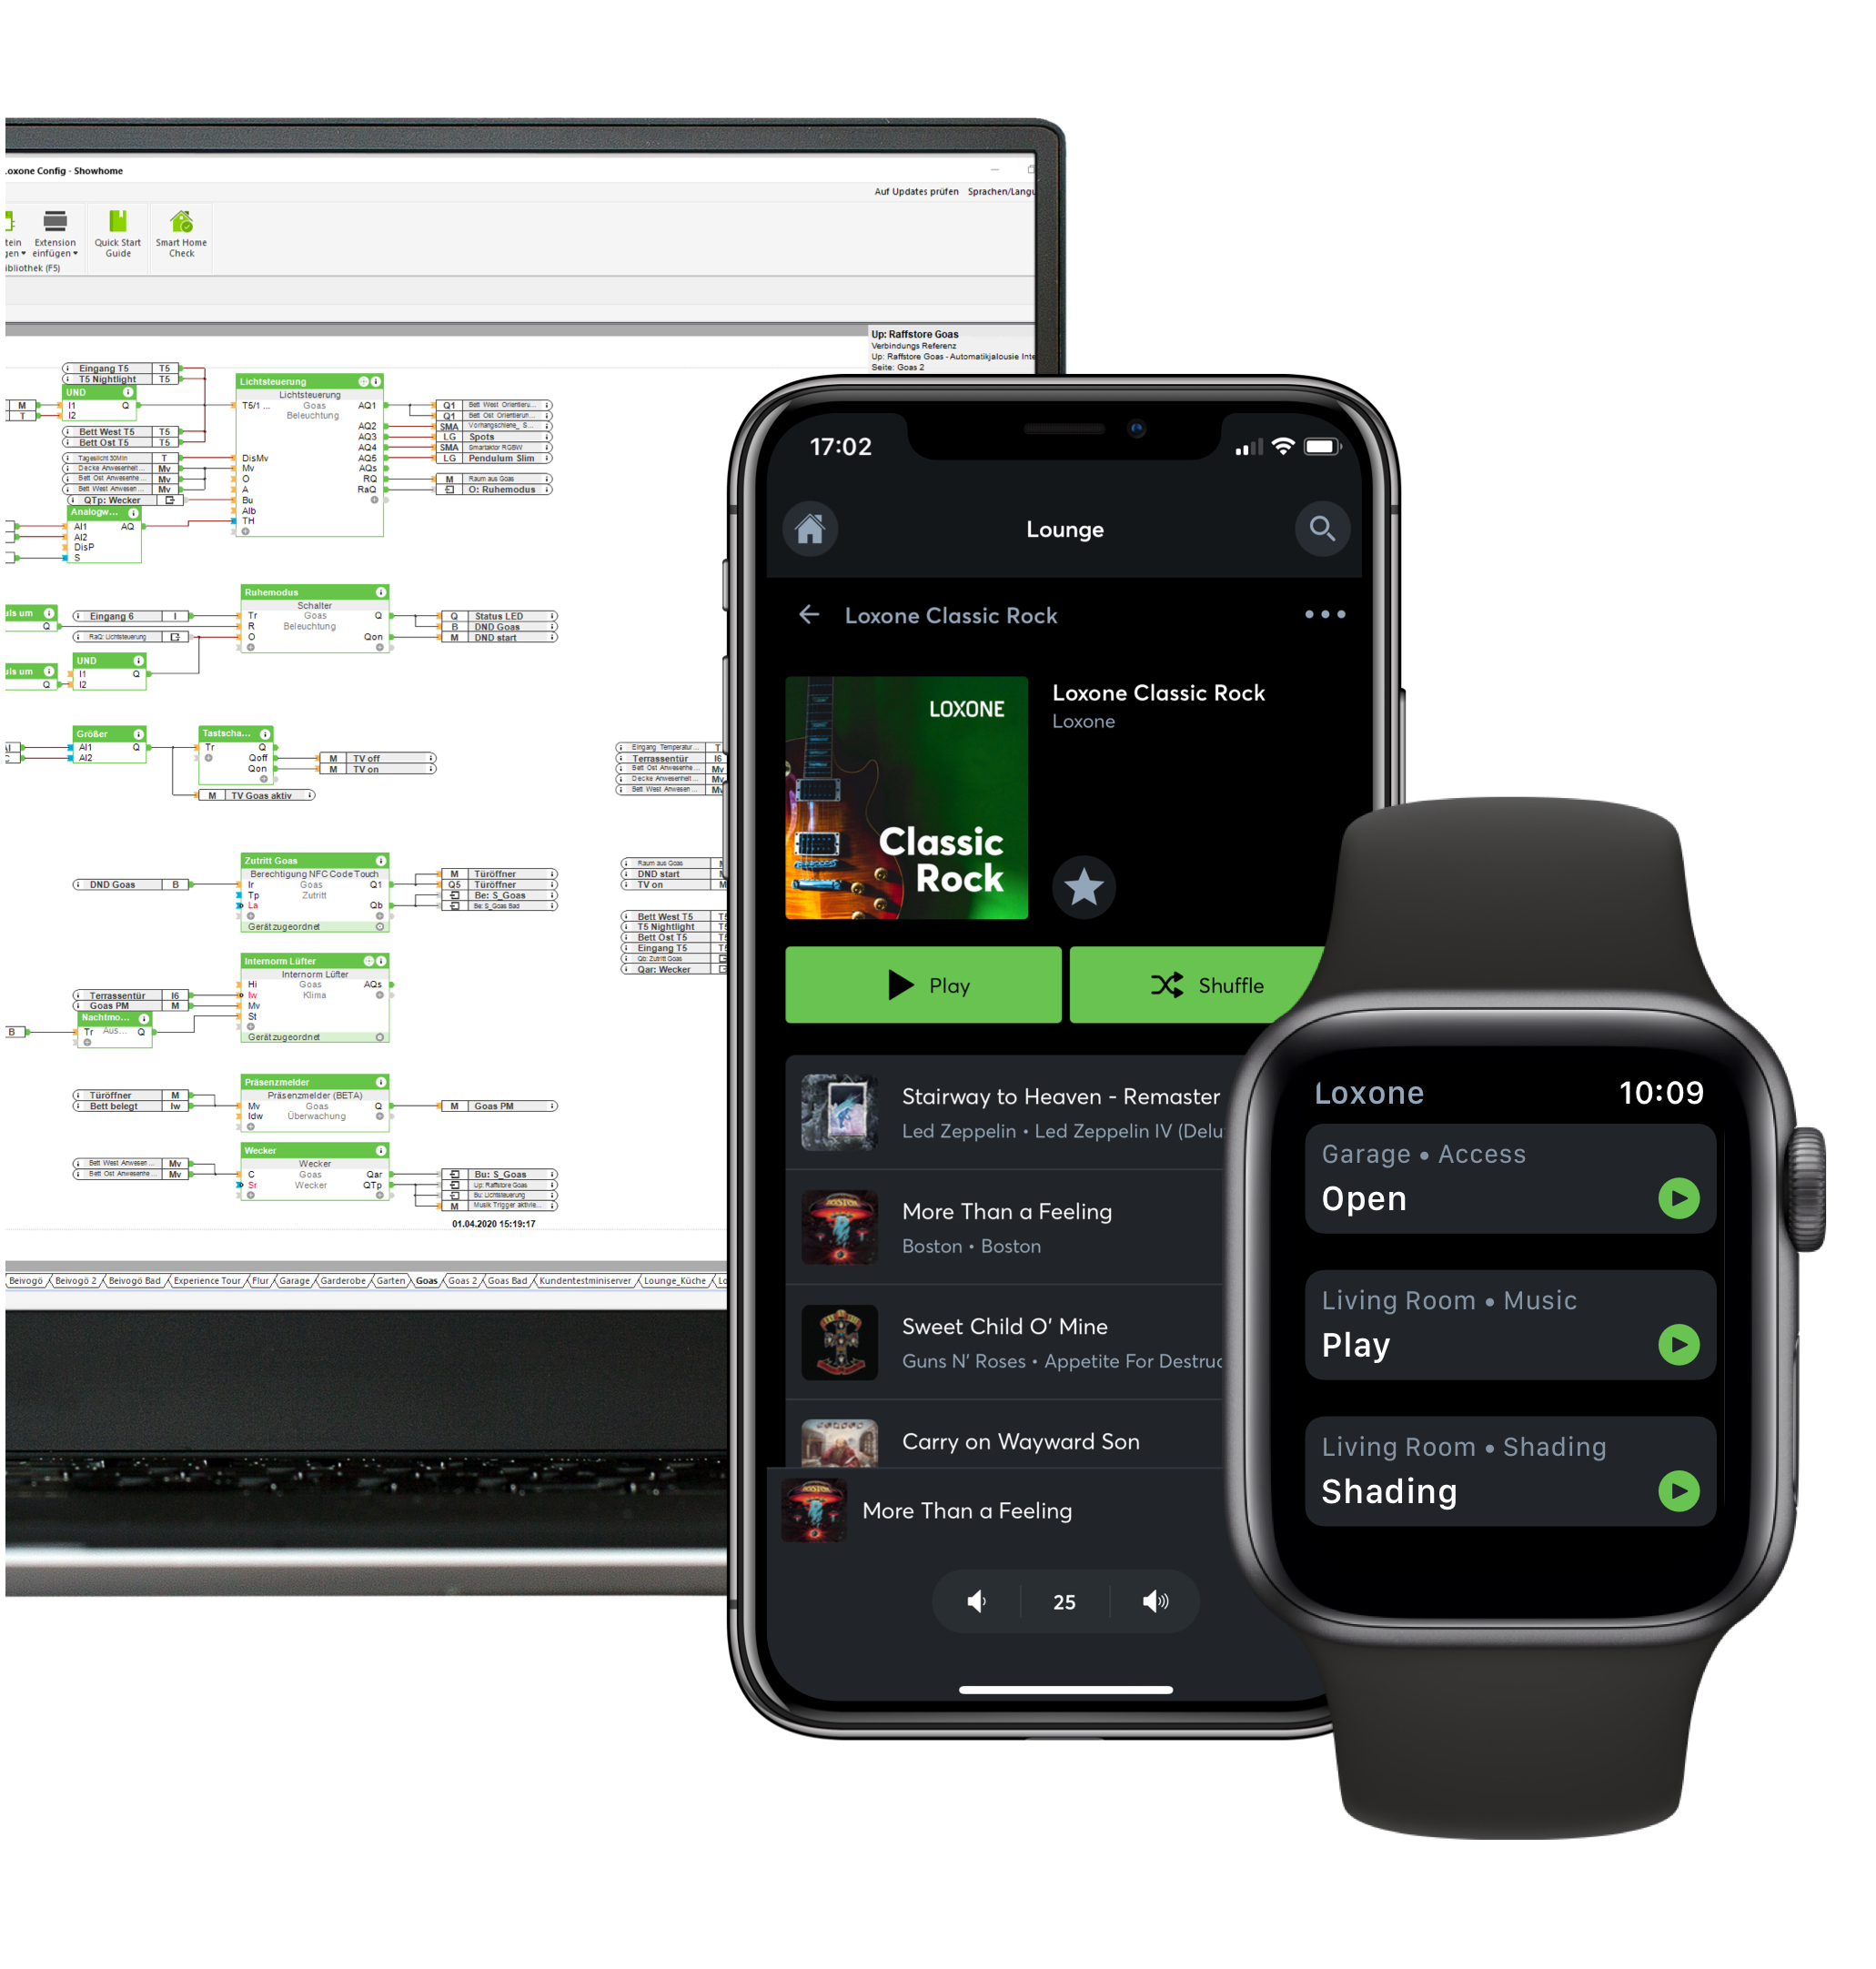 Loxone App displayed on iPhone, Apple Watch and desktop